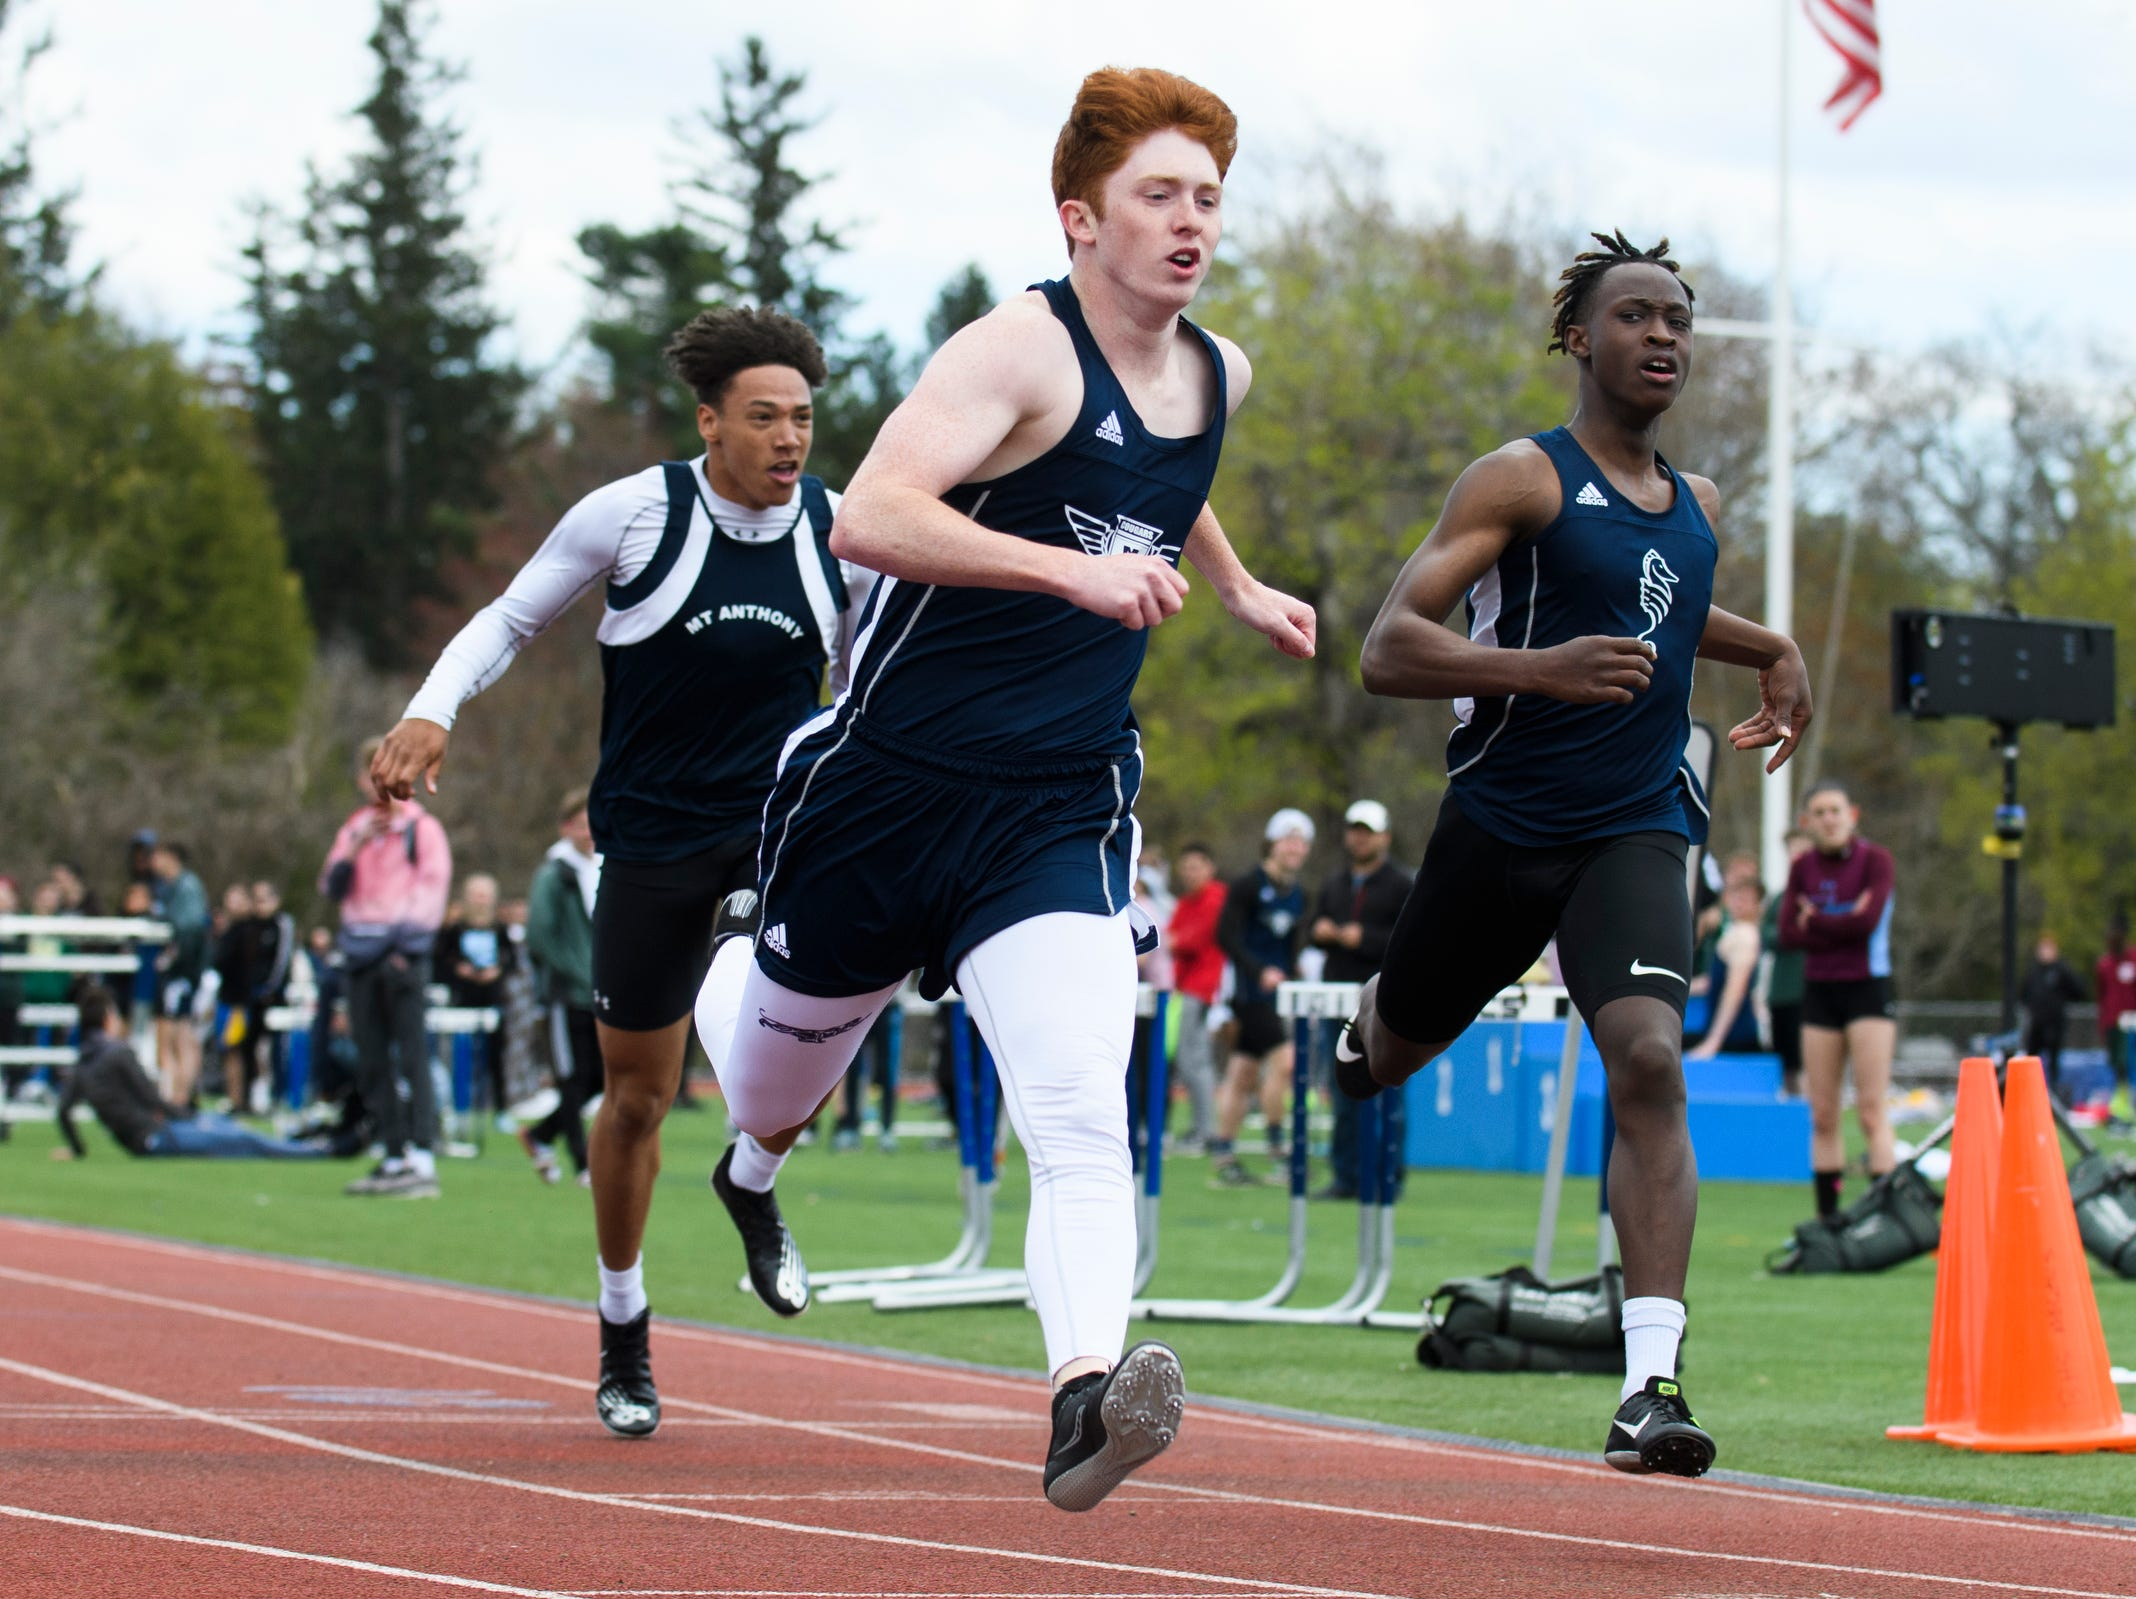 MMU's Silas Diamond crosses the finish line in first in the 100m dash during the Burlington Invitational high school track and field meet at Buck Hard Field on Saturday May 11, 2019 in Burlington, Vermont.